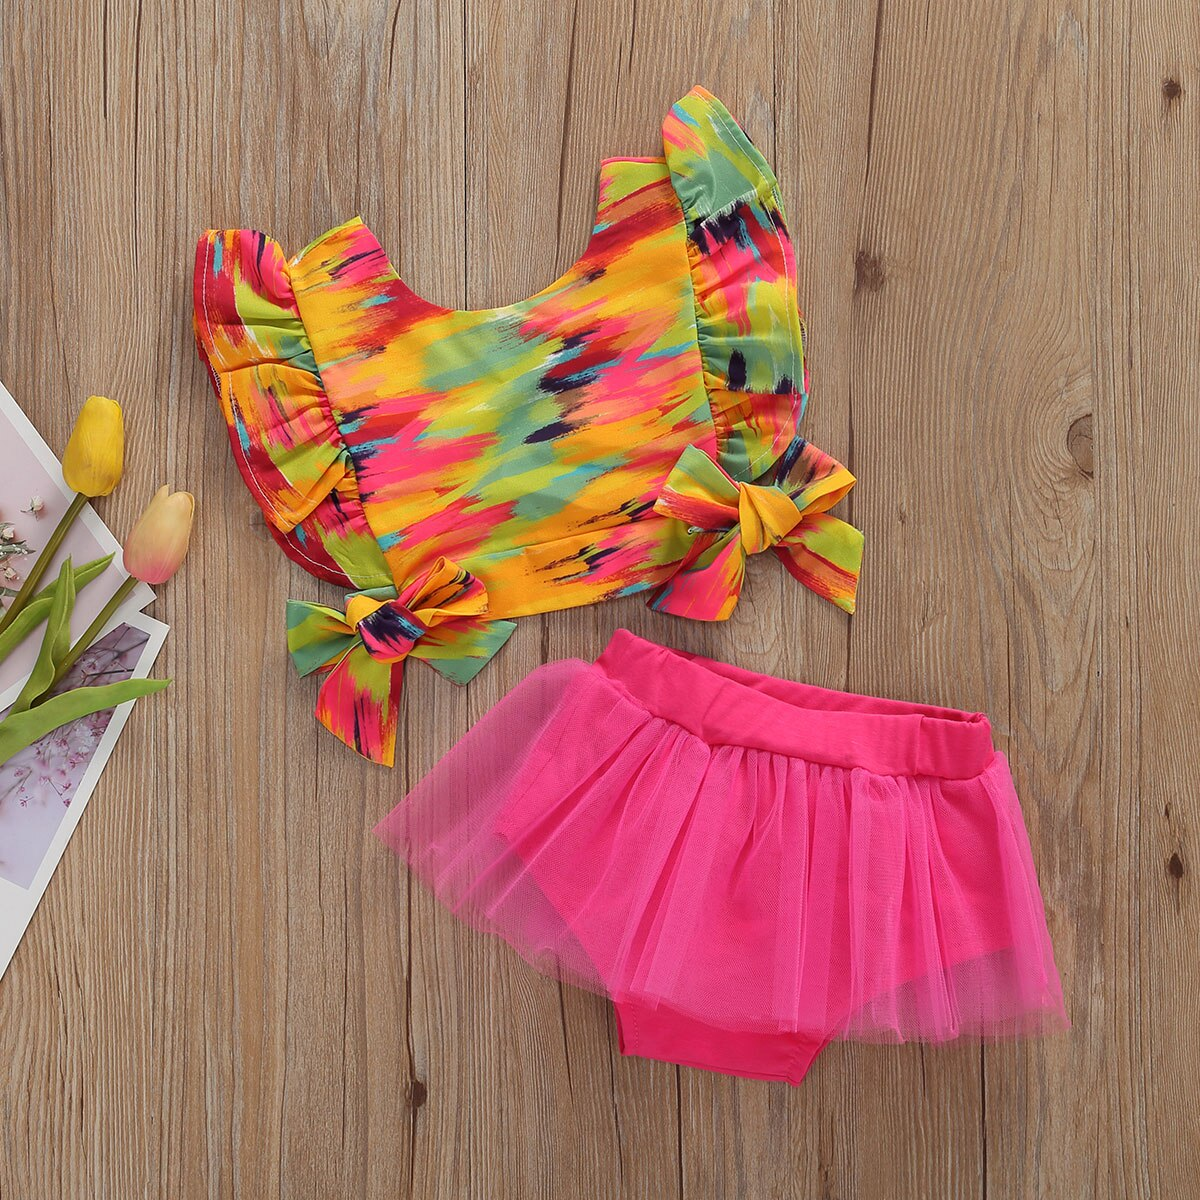 Infant Girl Fashion Summer Clothes Colorful Ruffle Trim Sleeve Bowknot Crop Tank + Mesh Shorts Sets 0-12 Months